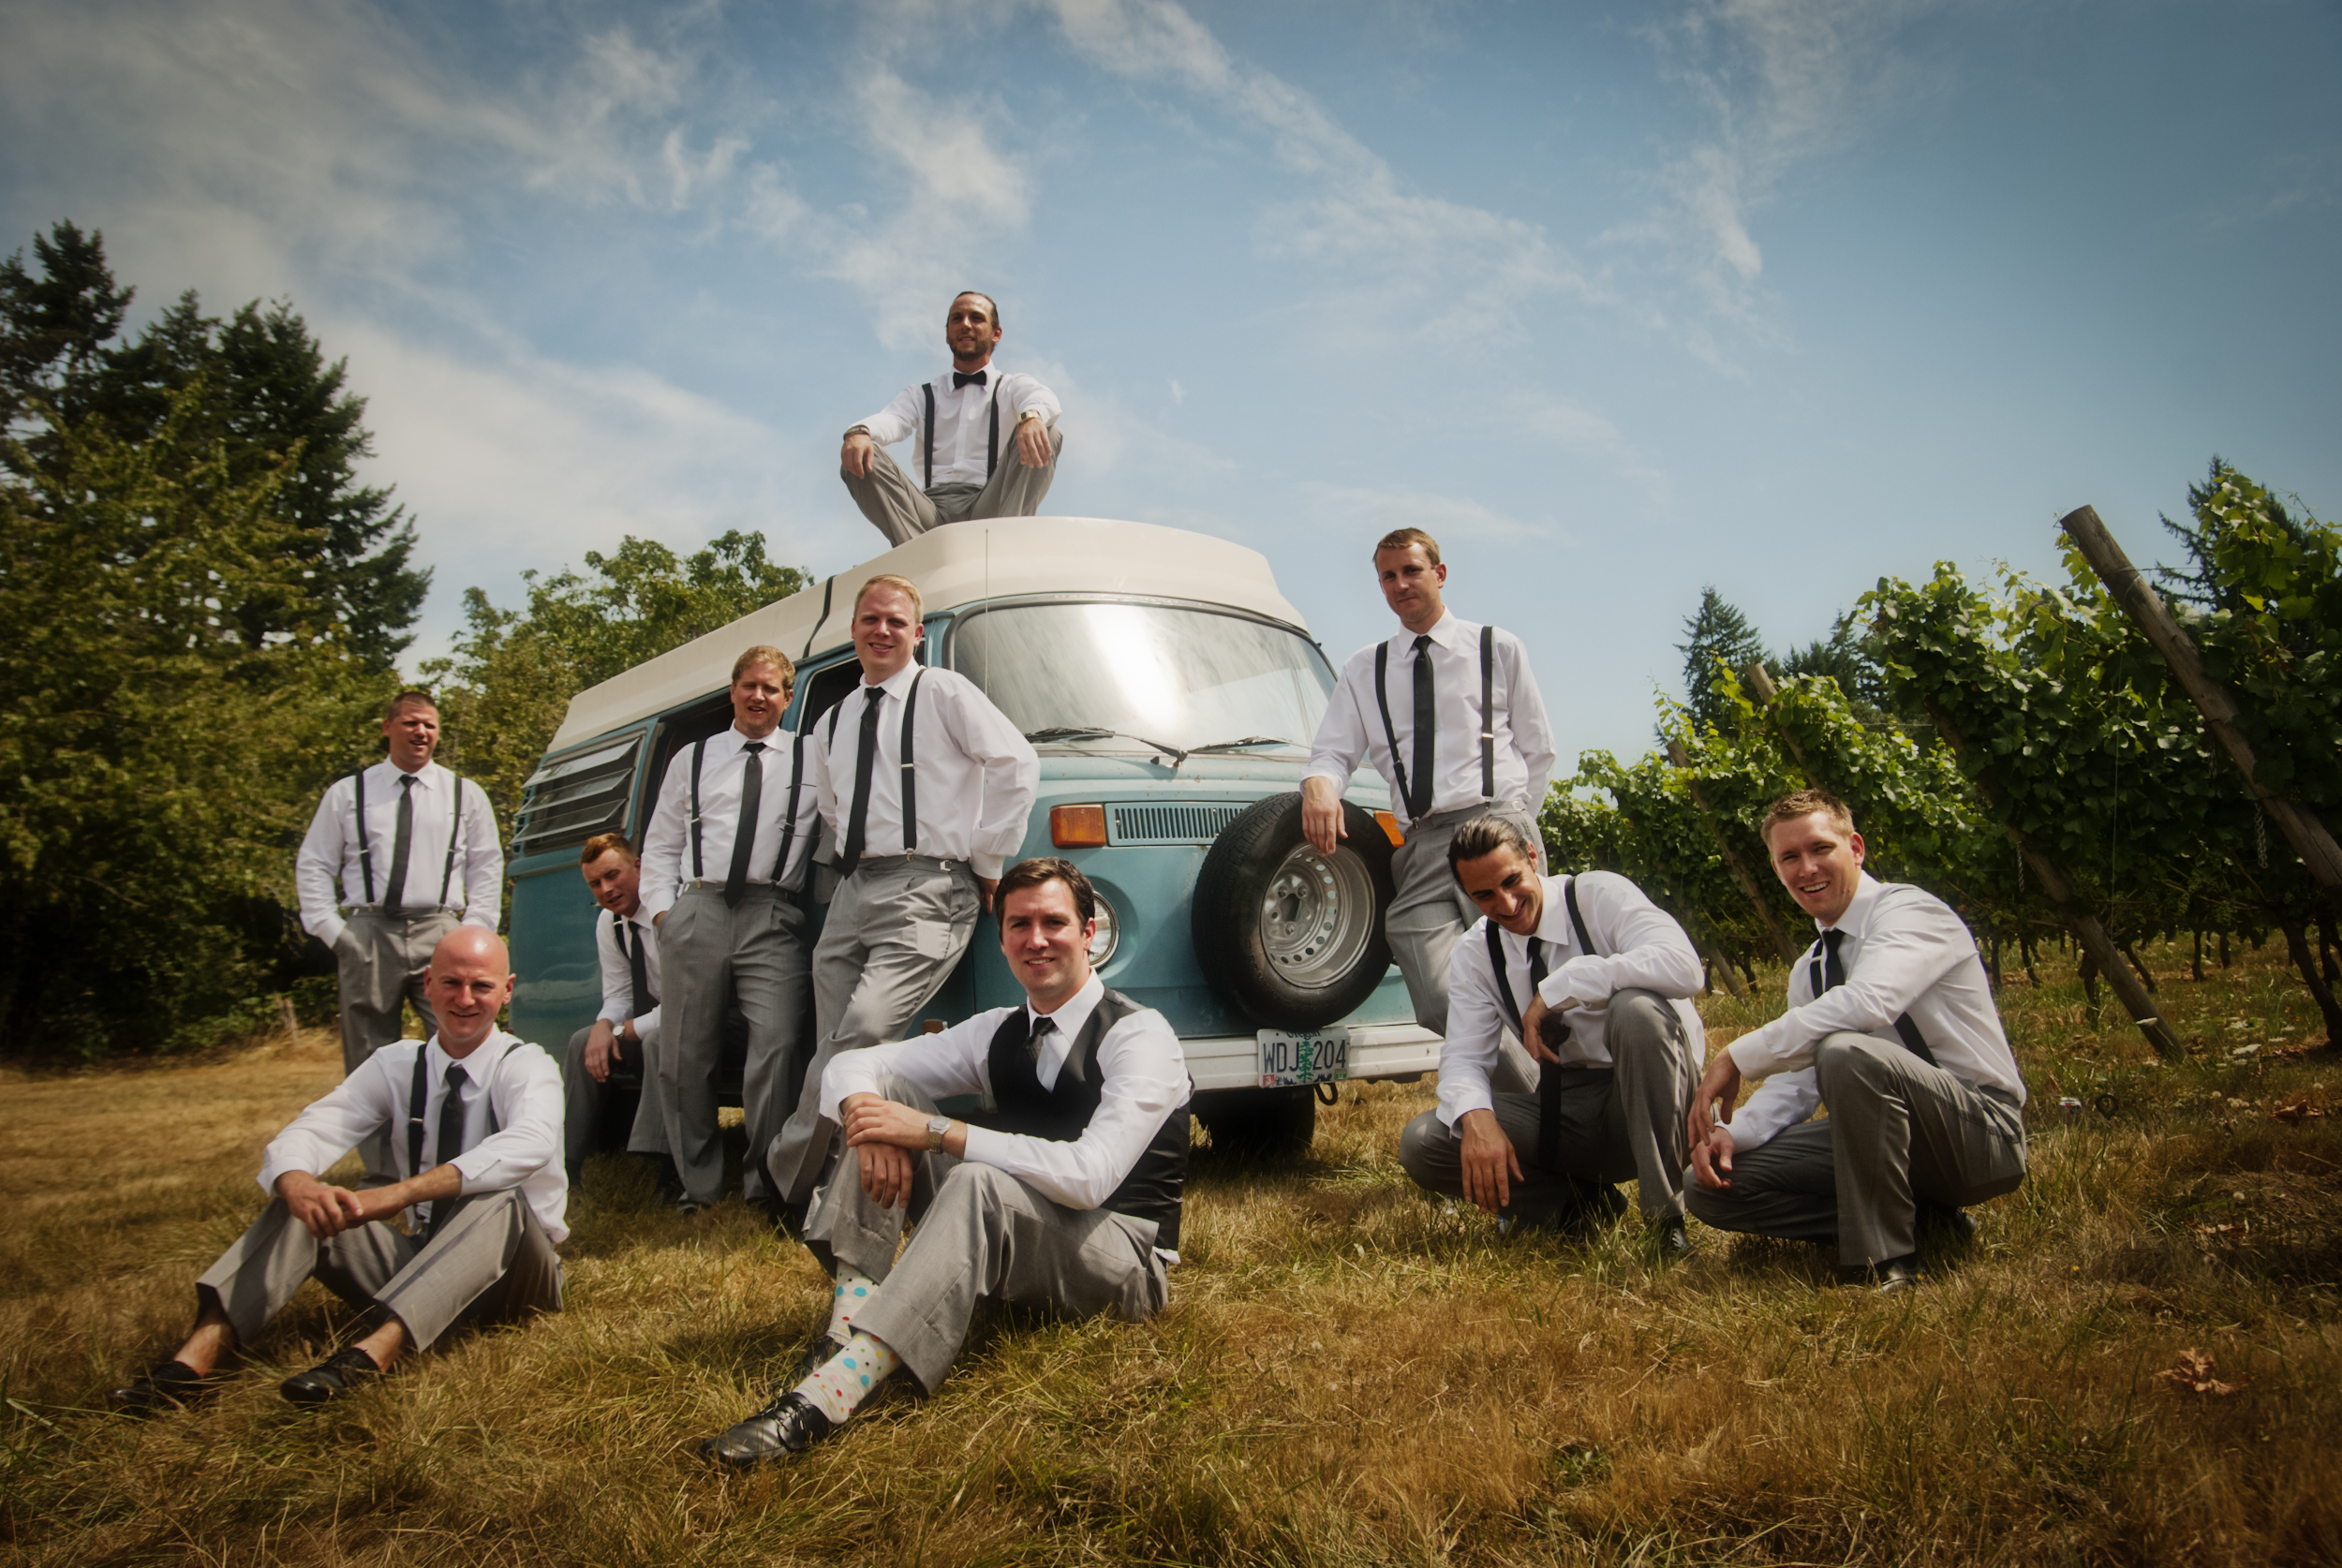 Portrait of groom and groomsmen on Volkswagon bus  at Kings Raven Vineyard by Ripe Photography.